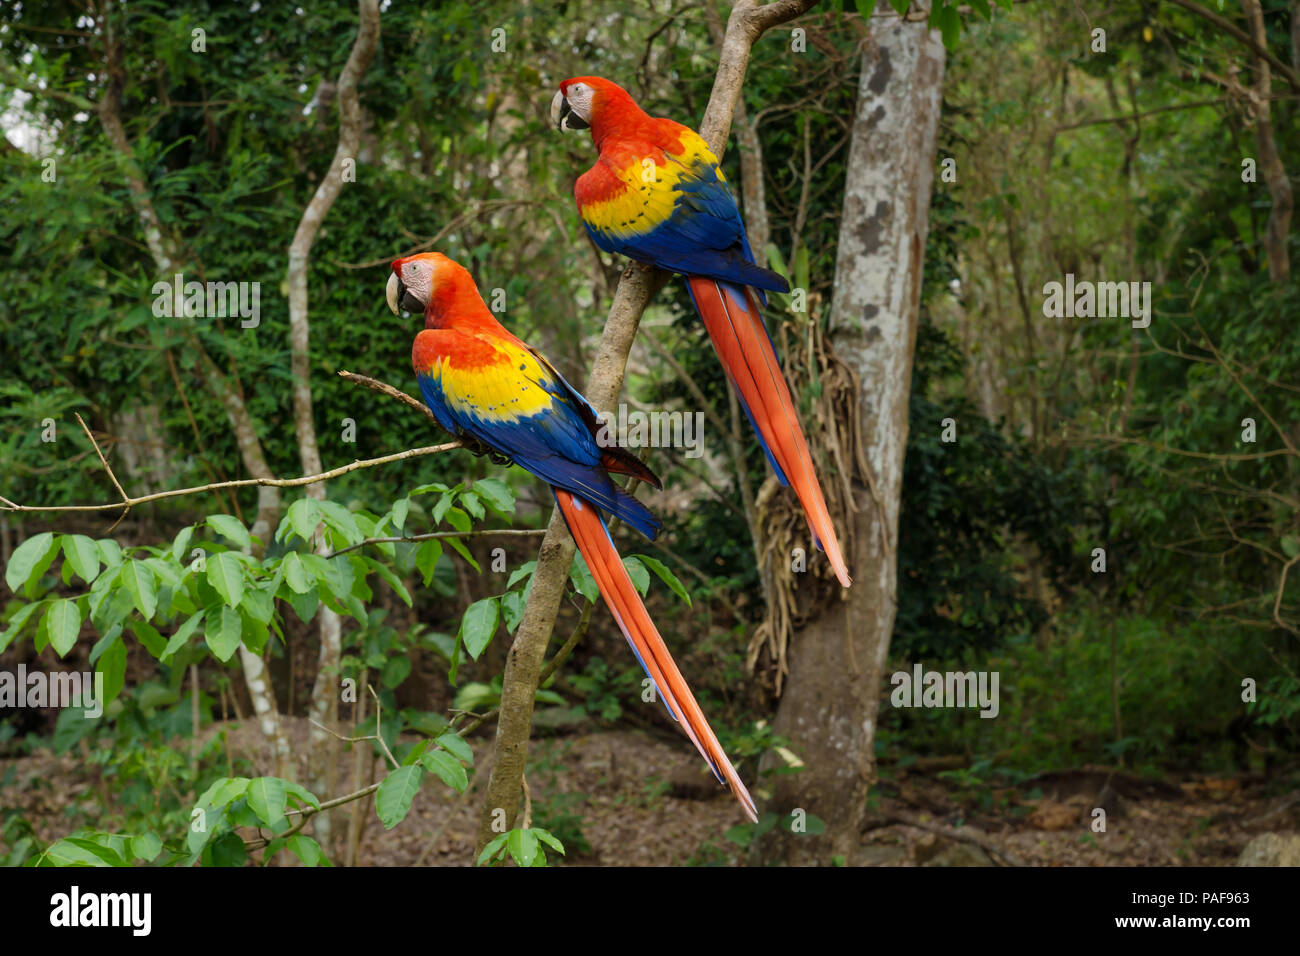 Two Scarlet Macaw parrots - Aras - siting in the tree in Copan Ruinas, Honduras, Central America - Stock Image